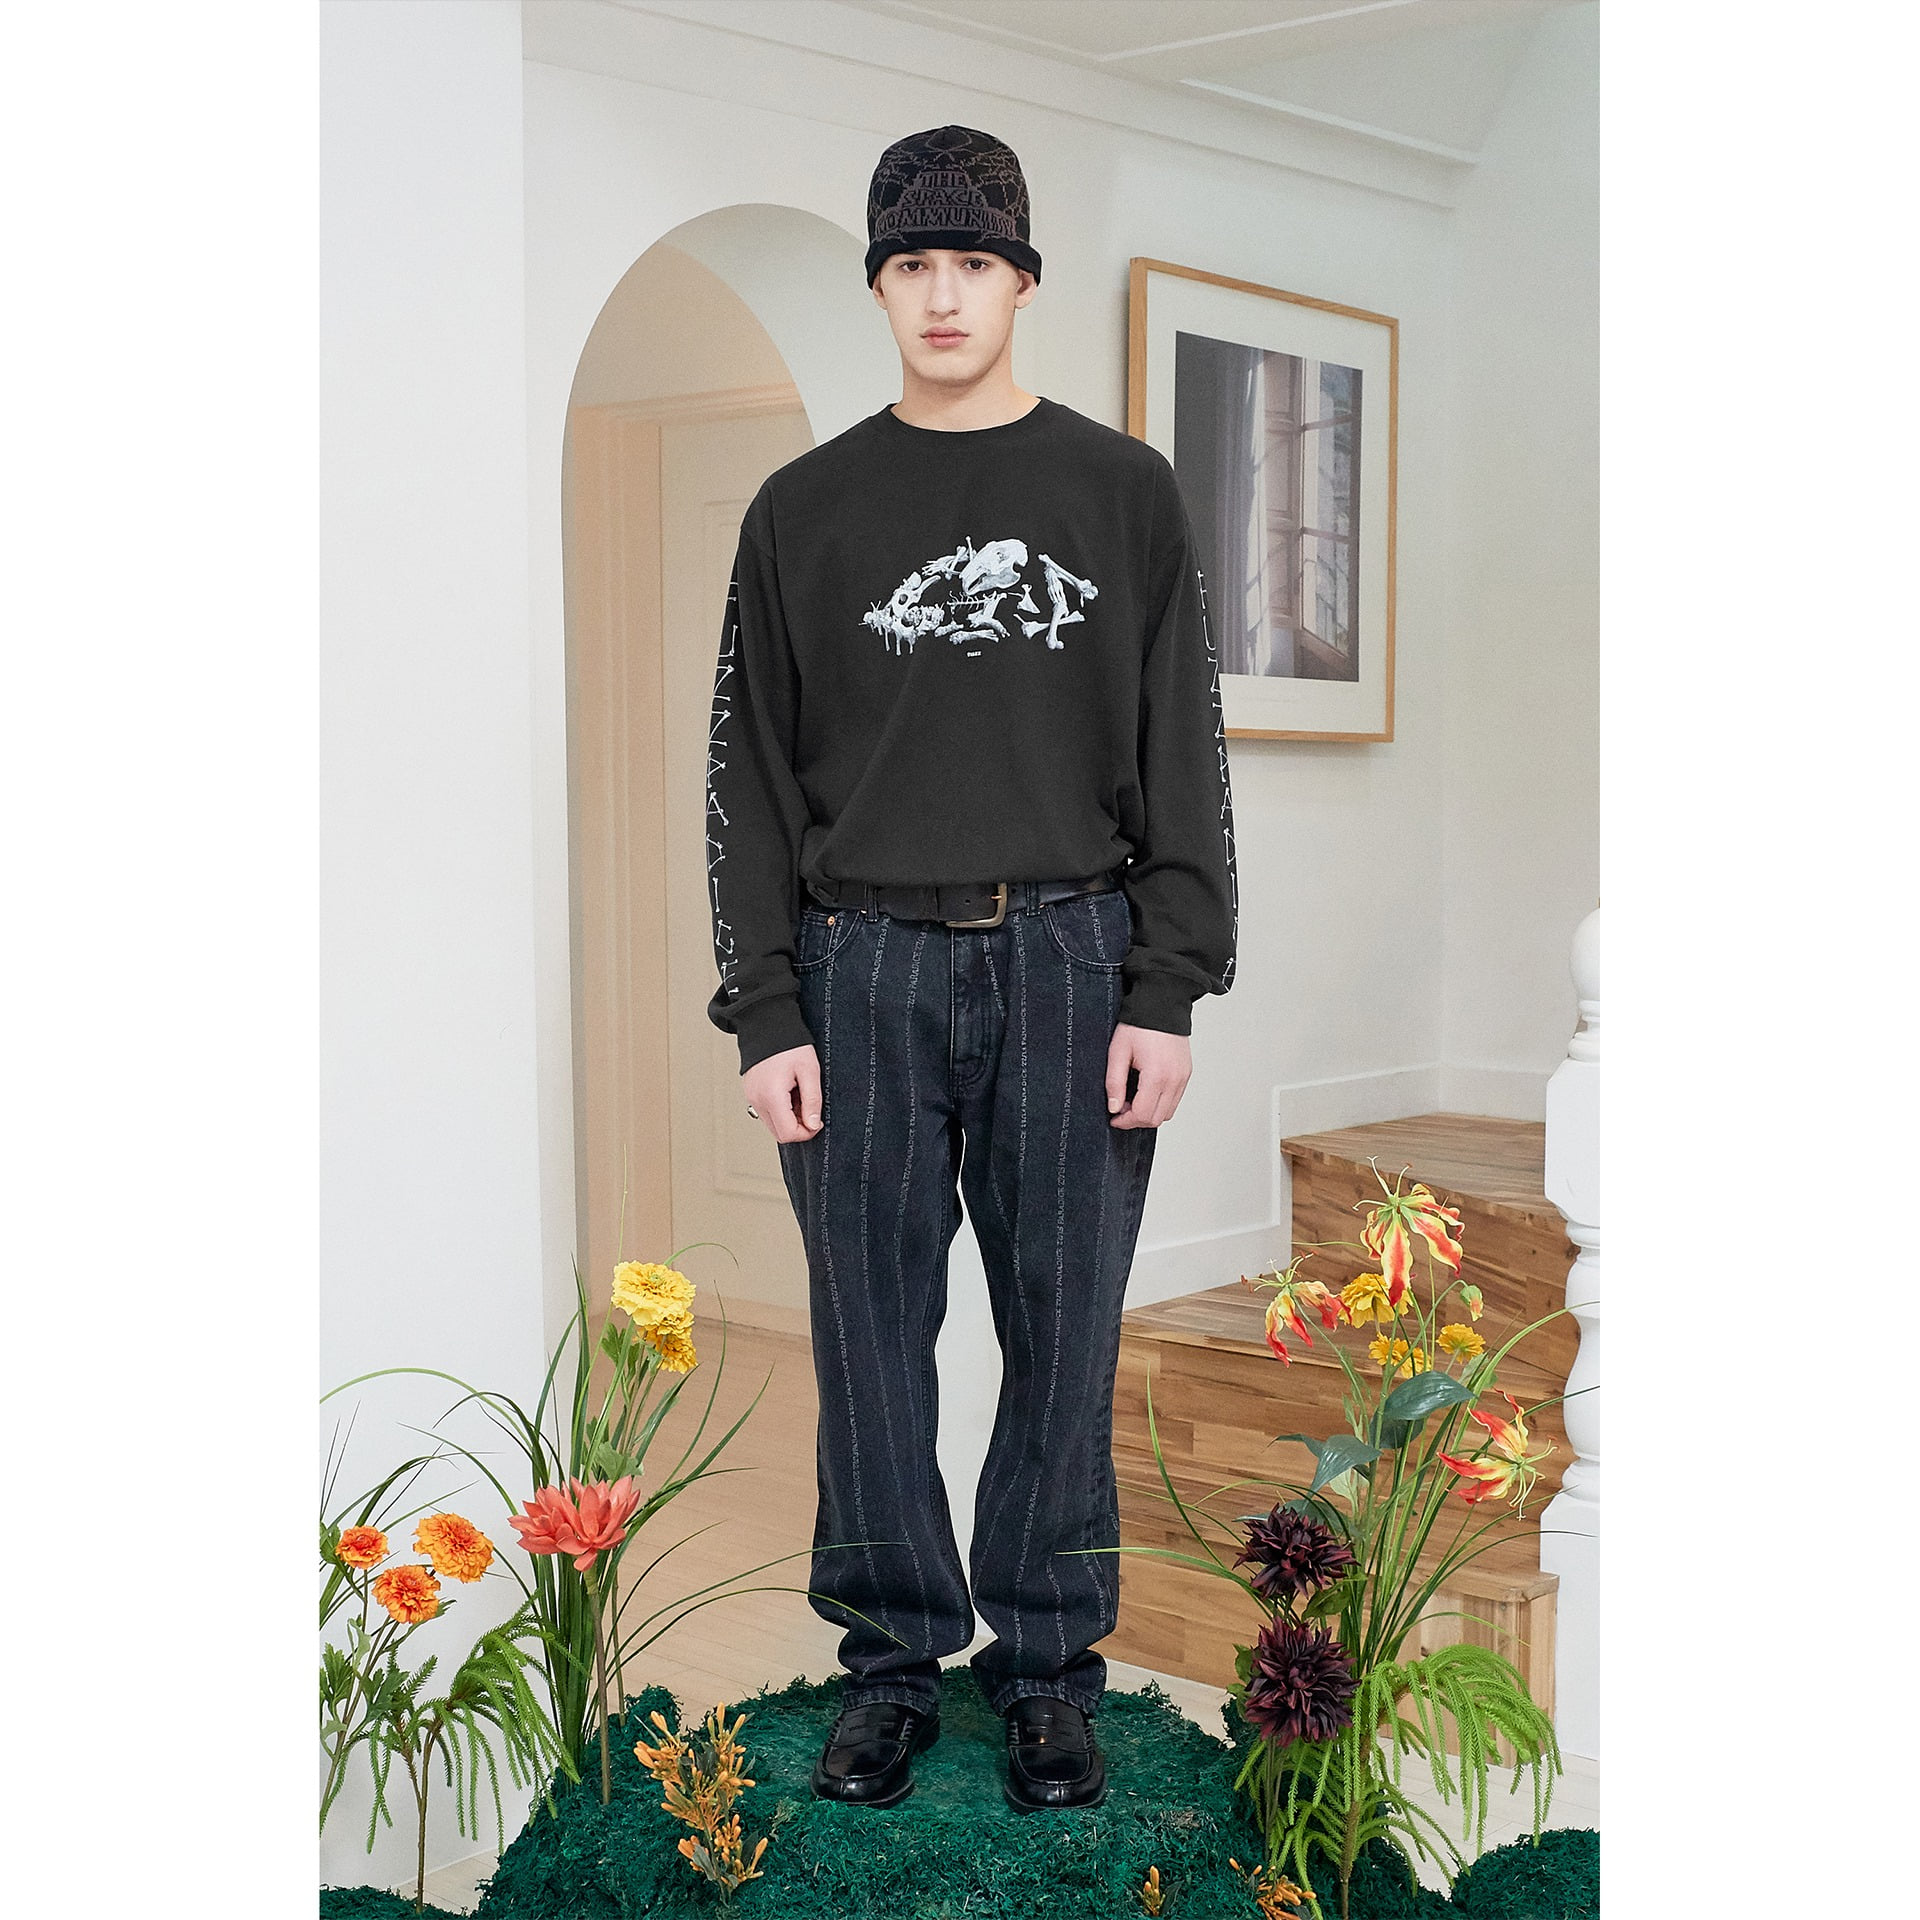 FUZZ BUNNY ASHES L/S TEE dark charcoal